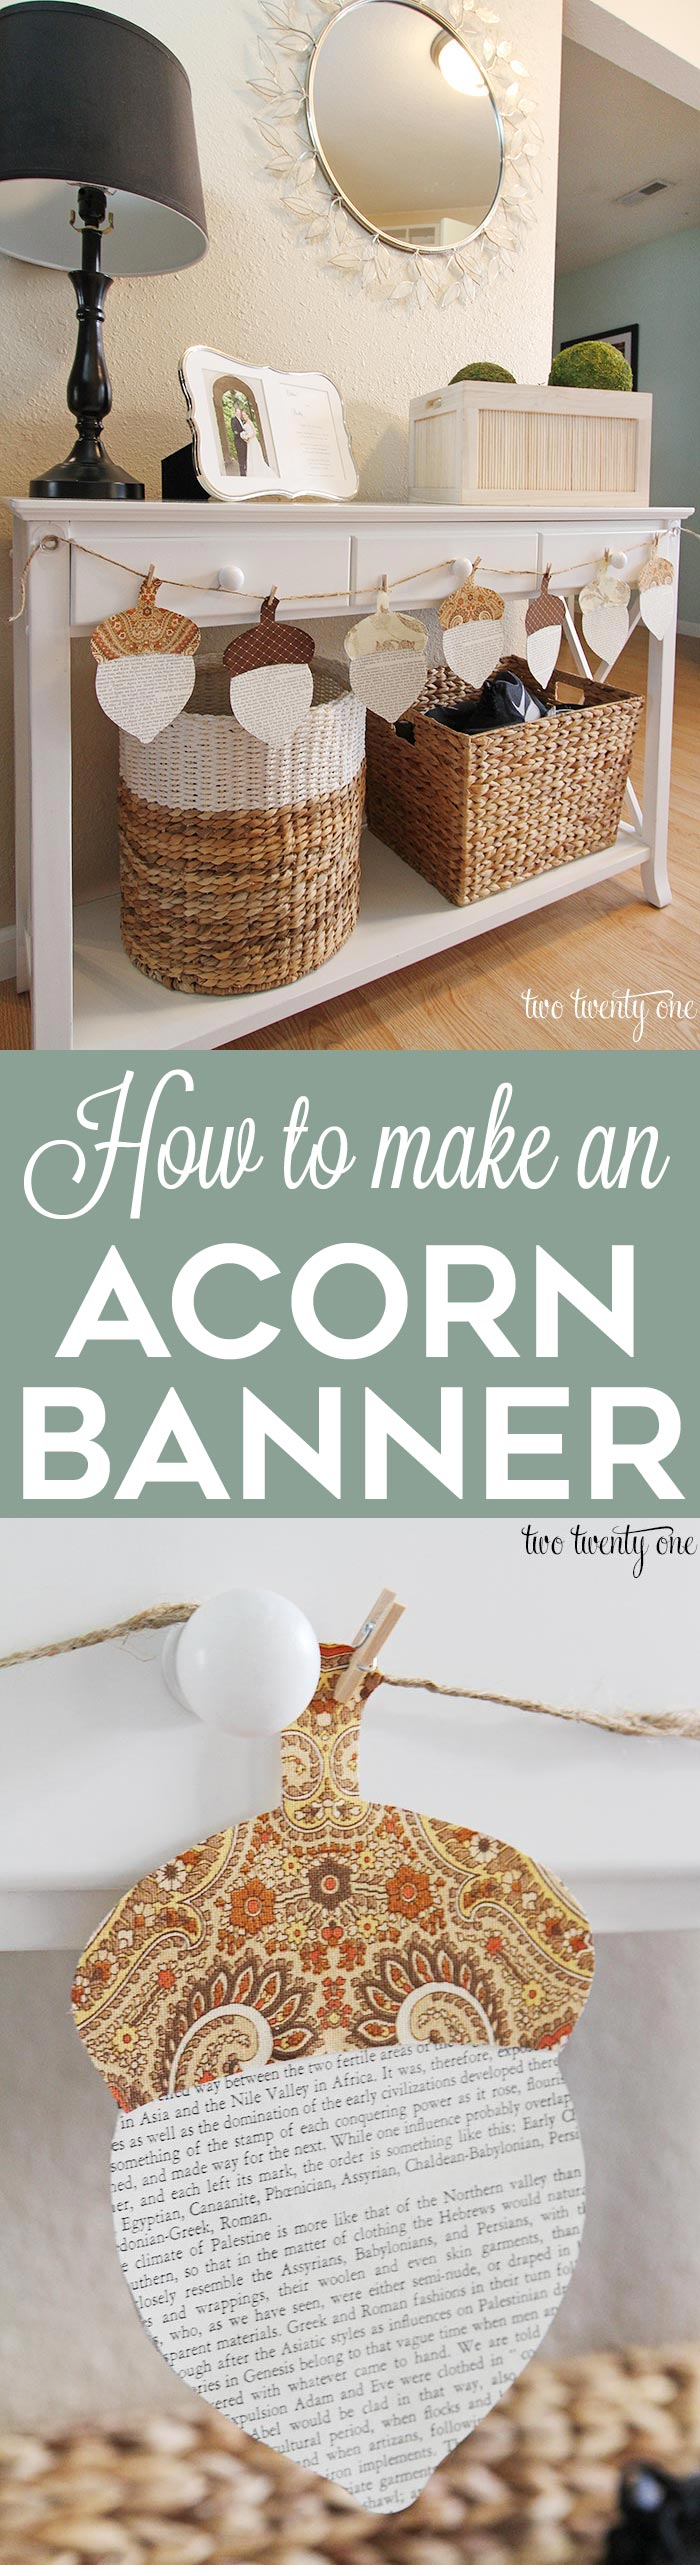 25 Easy Fall DIY Projects: DIY Acorn Banner by Two Twenty One